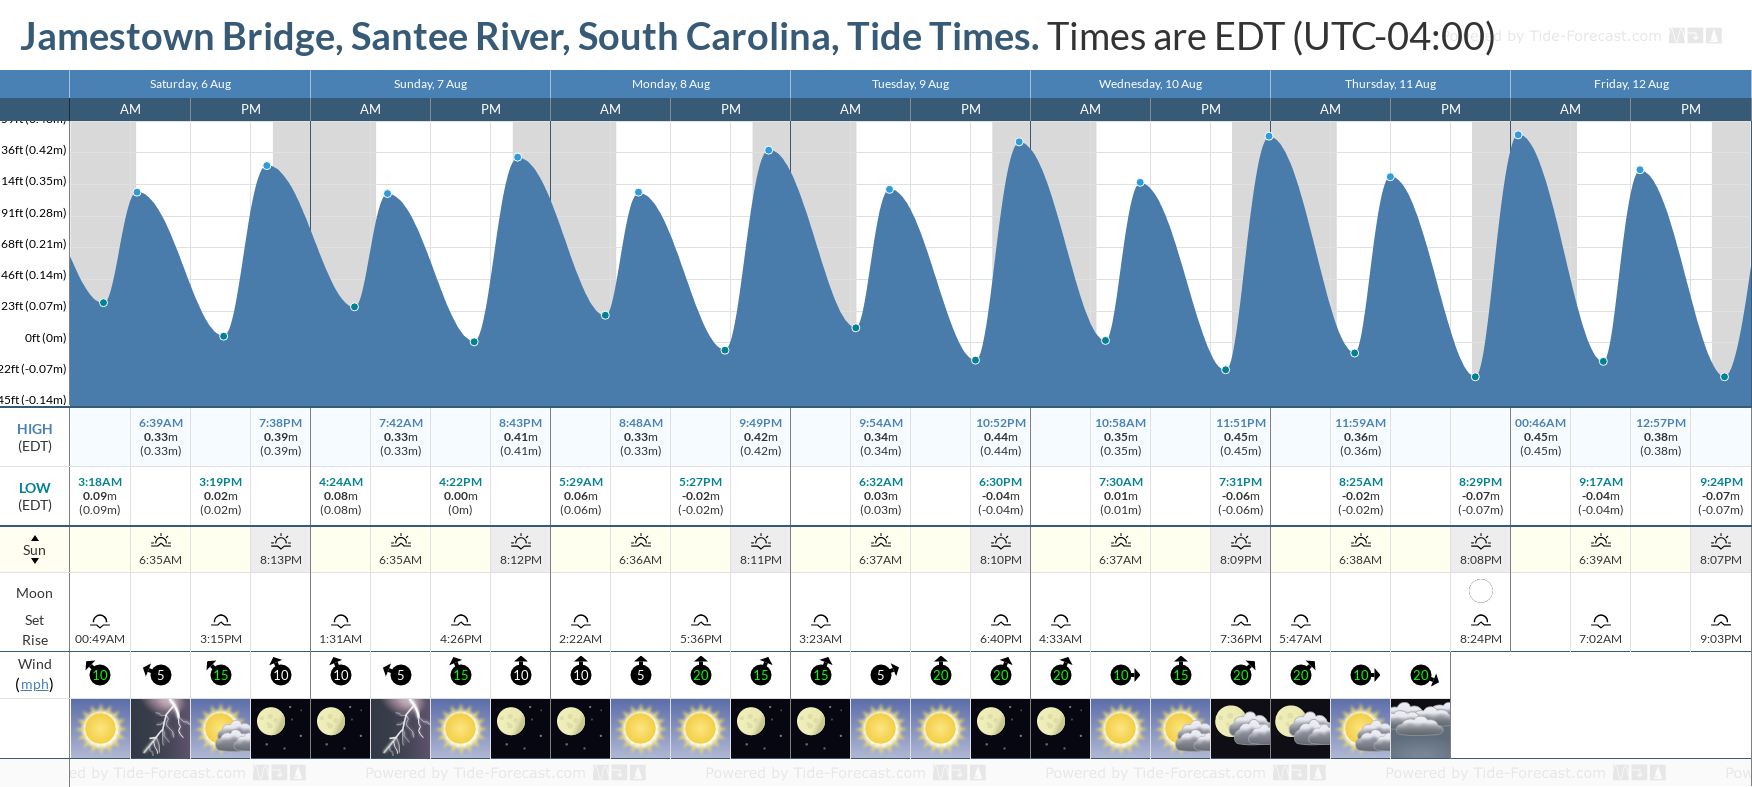 Jamestown Bridge, Santee River, South Carolina Tide Chart including high and low tide tide times for the next 7 days